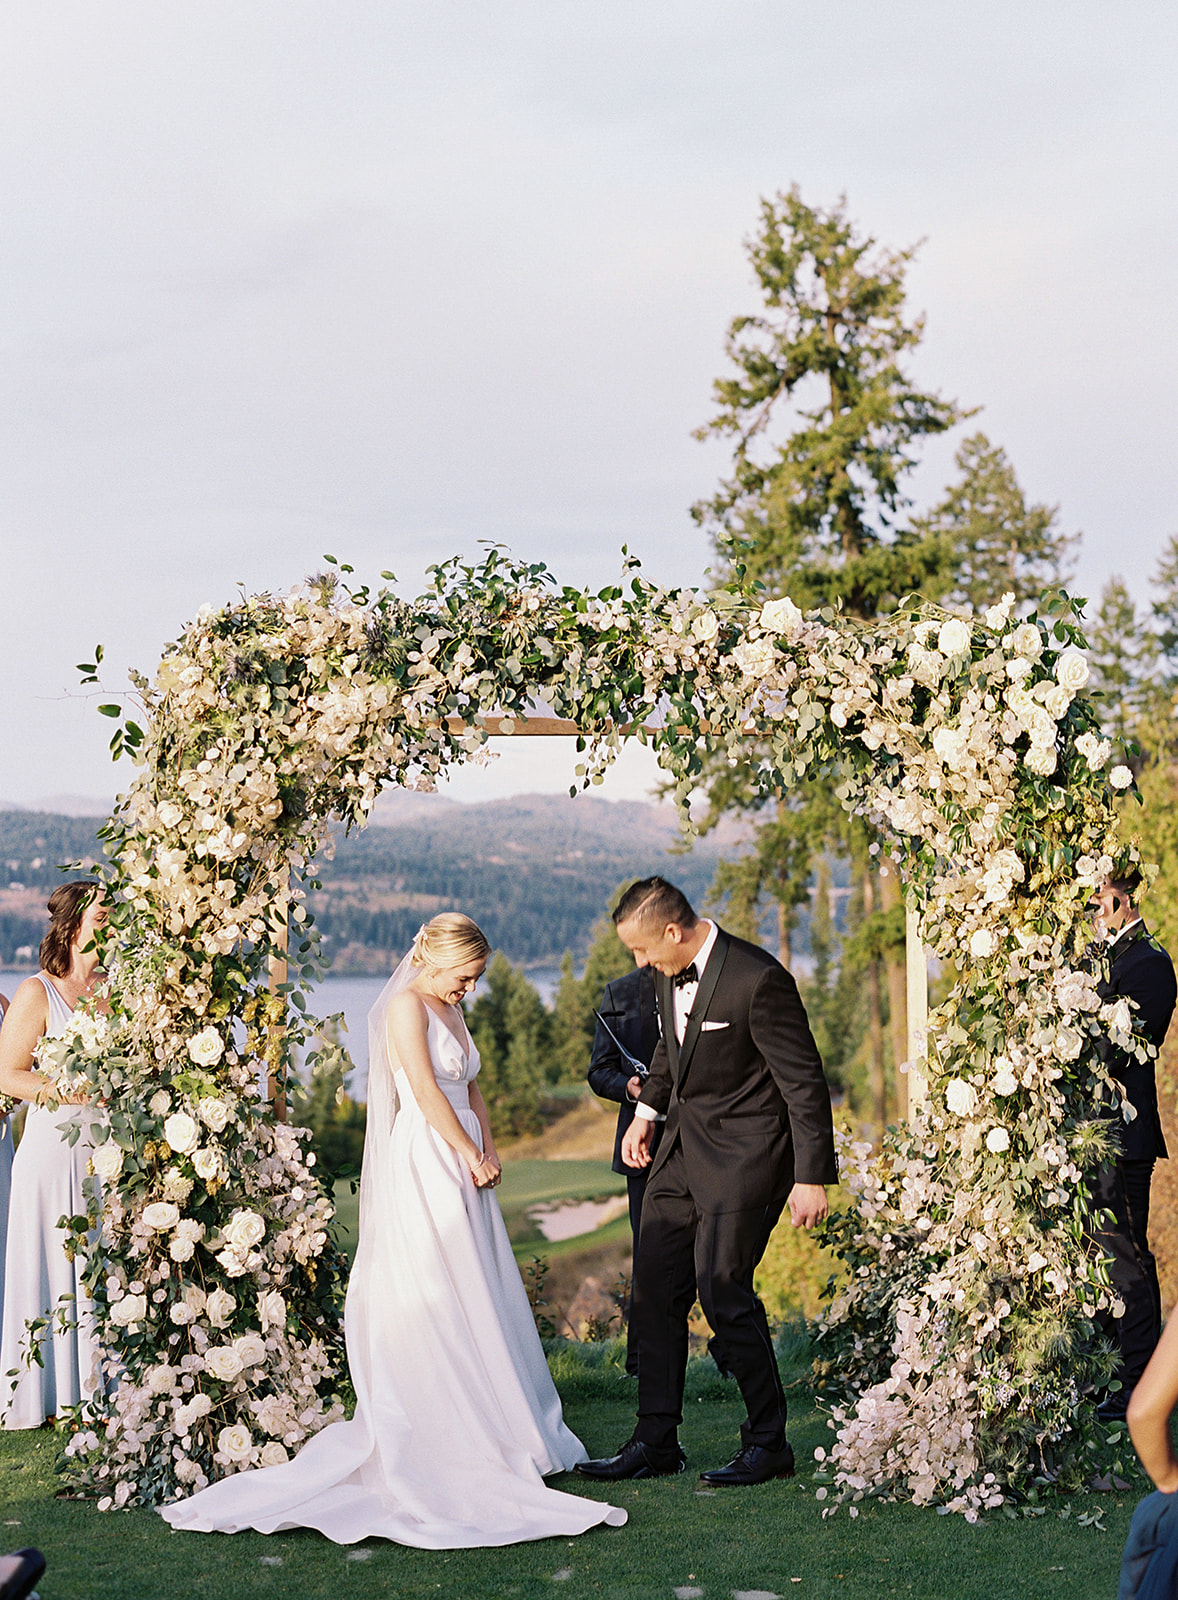 bride and groom next to floral wedding arch outside